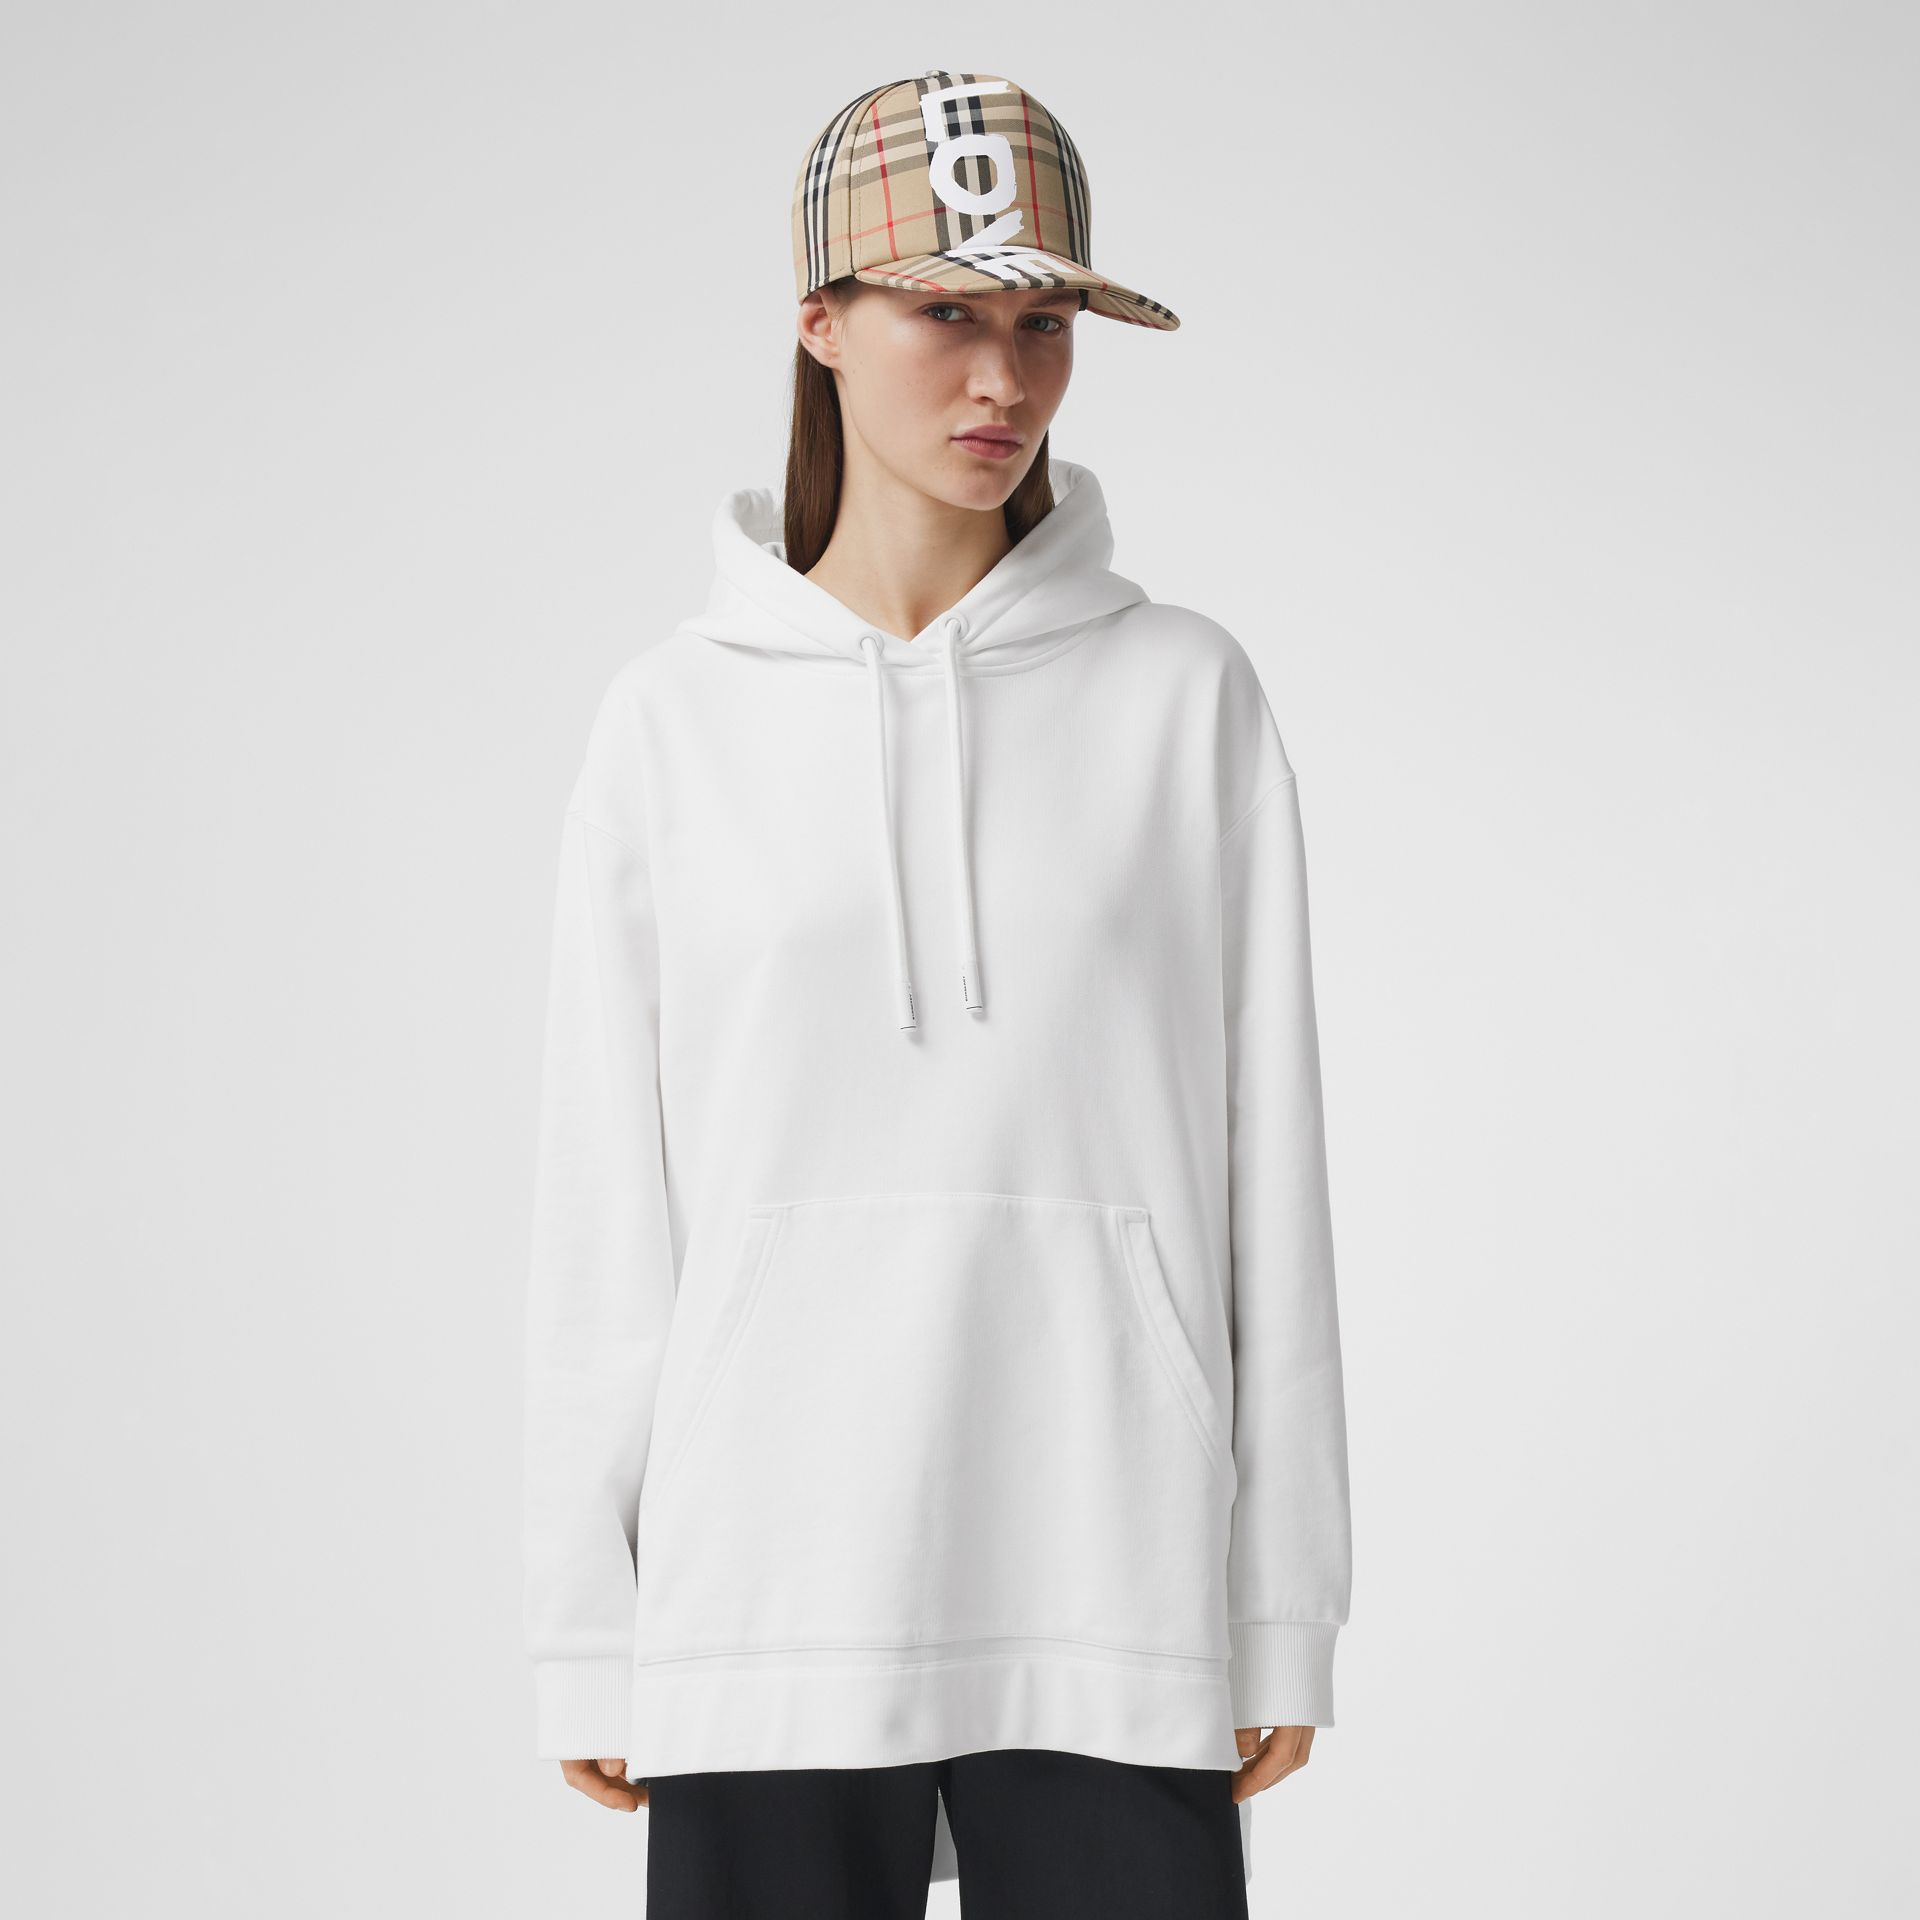 Coordinates Print Cotton Oversized Hoodie in White - Women | Burberry - gallery image 2